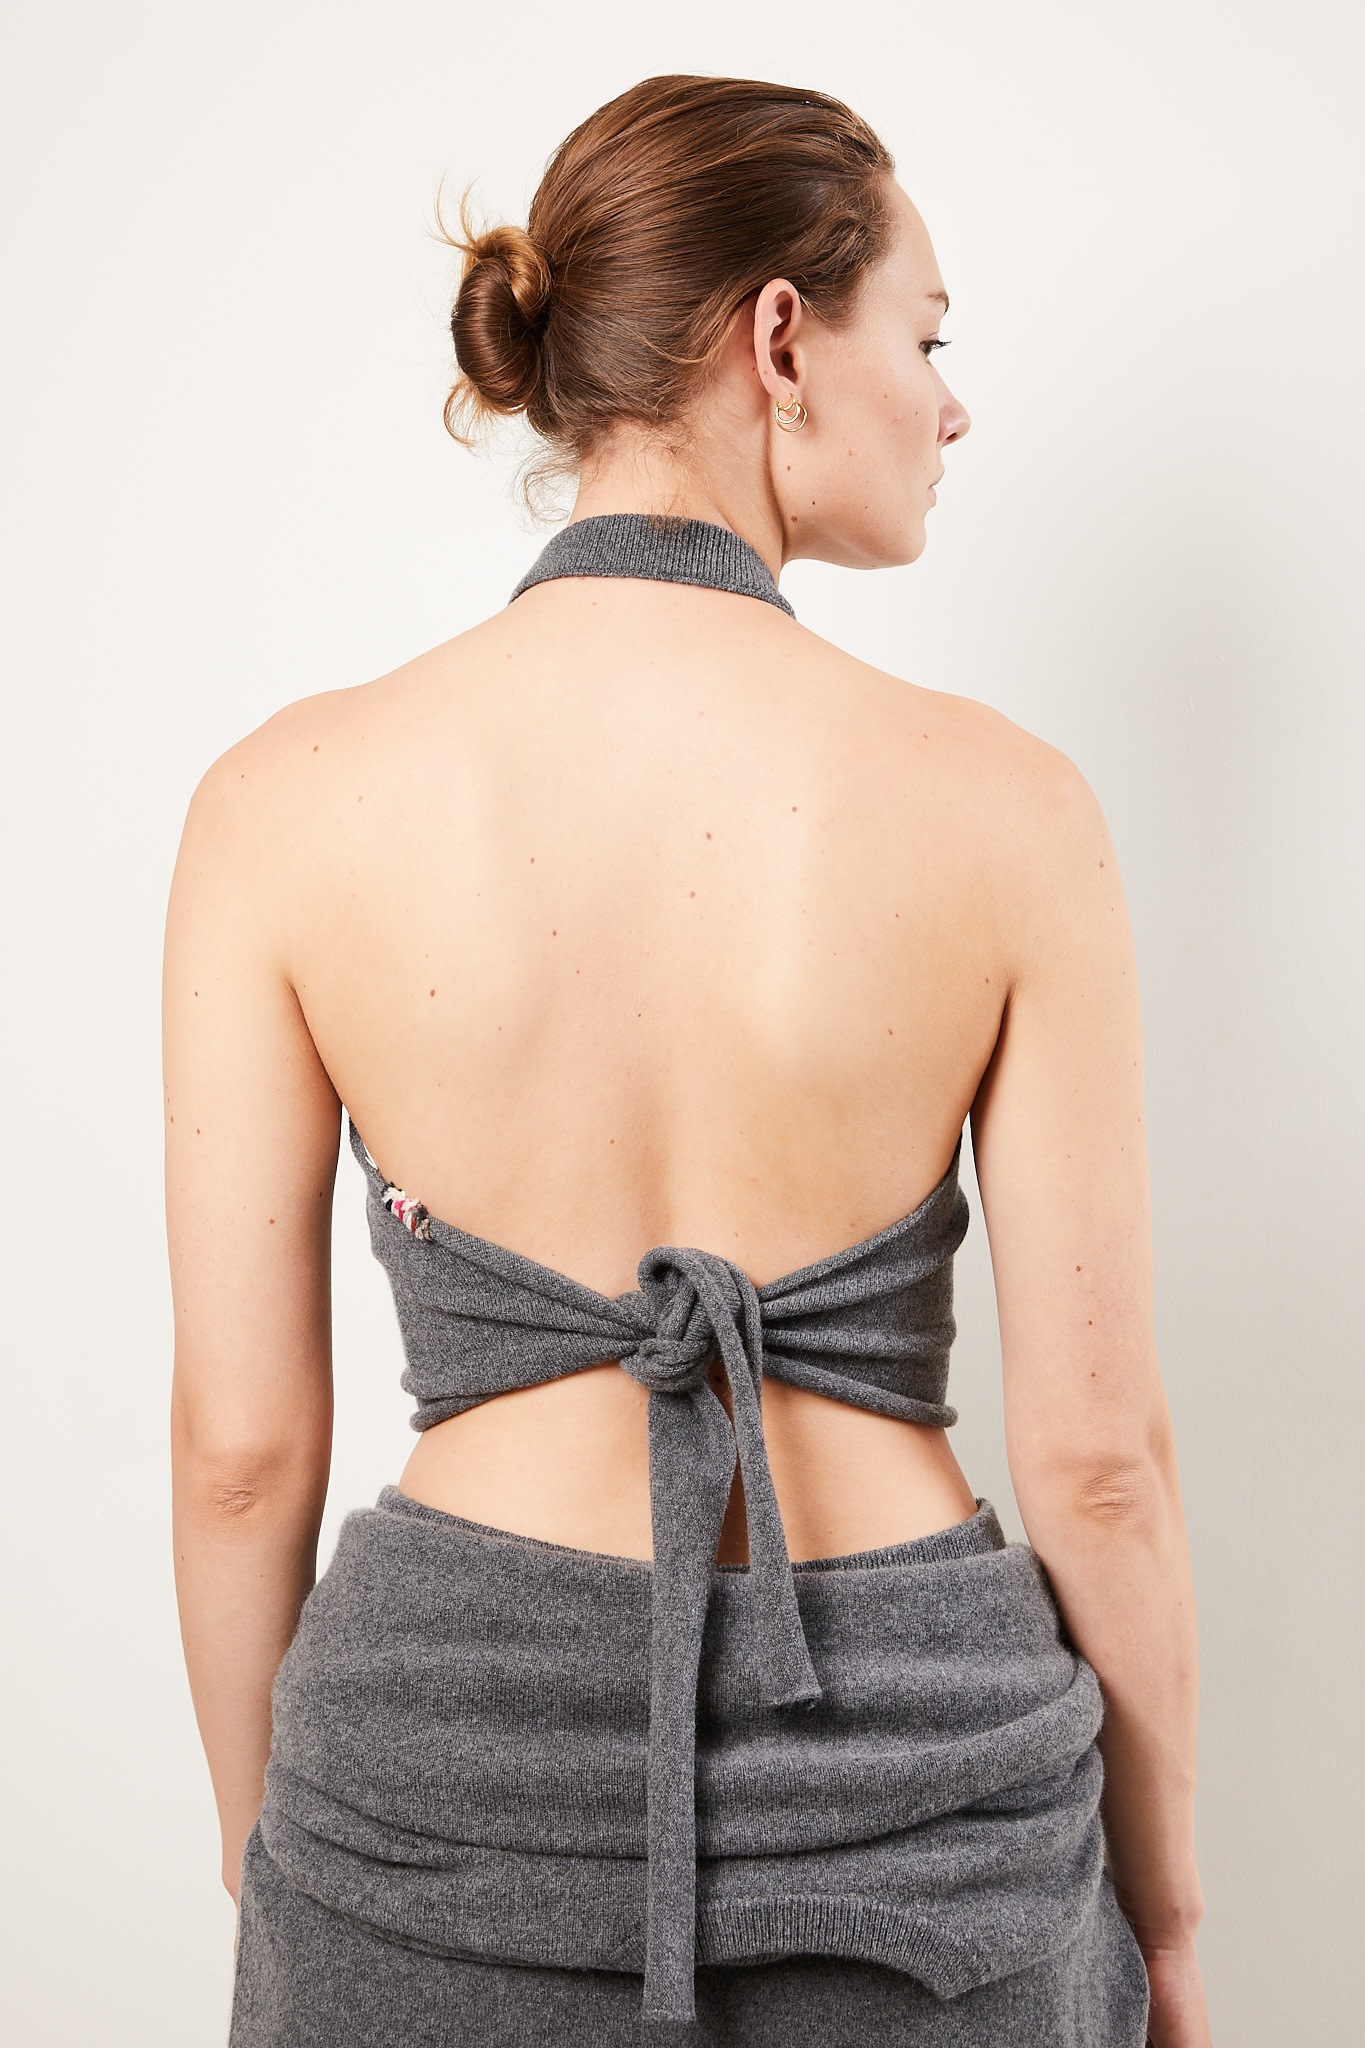 extreme cashmere - Wies halter top